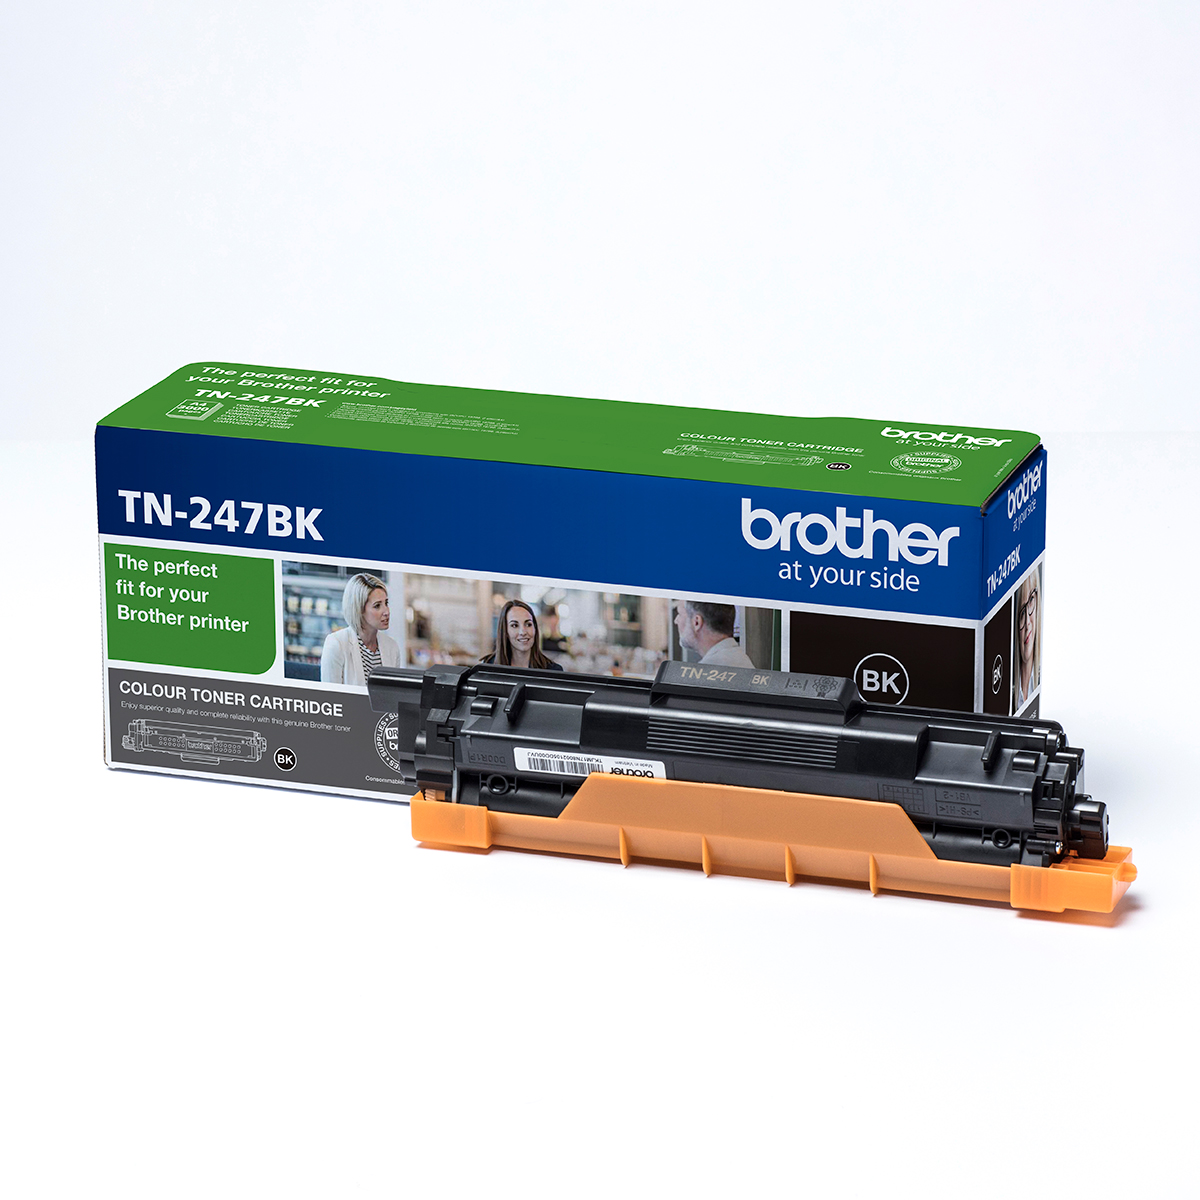 Brother TN-247BK High Yield Black Toner